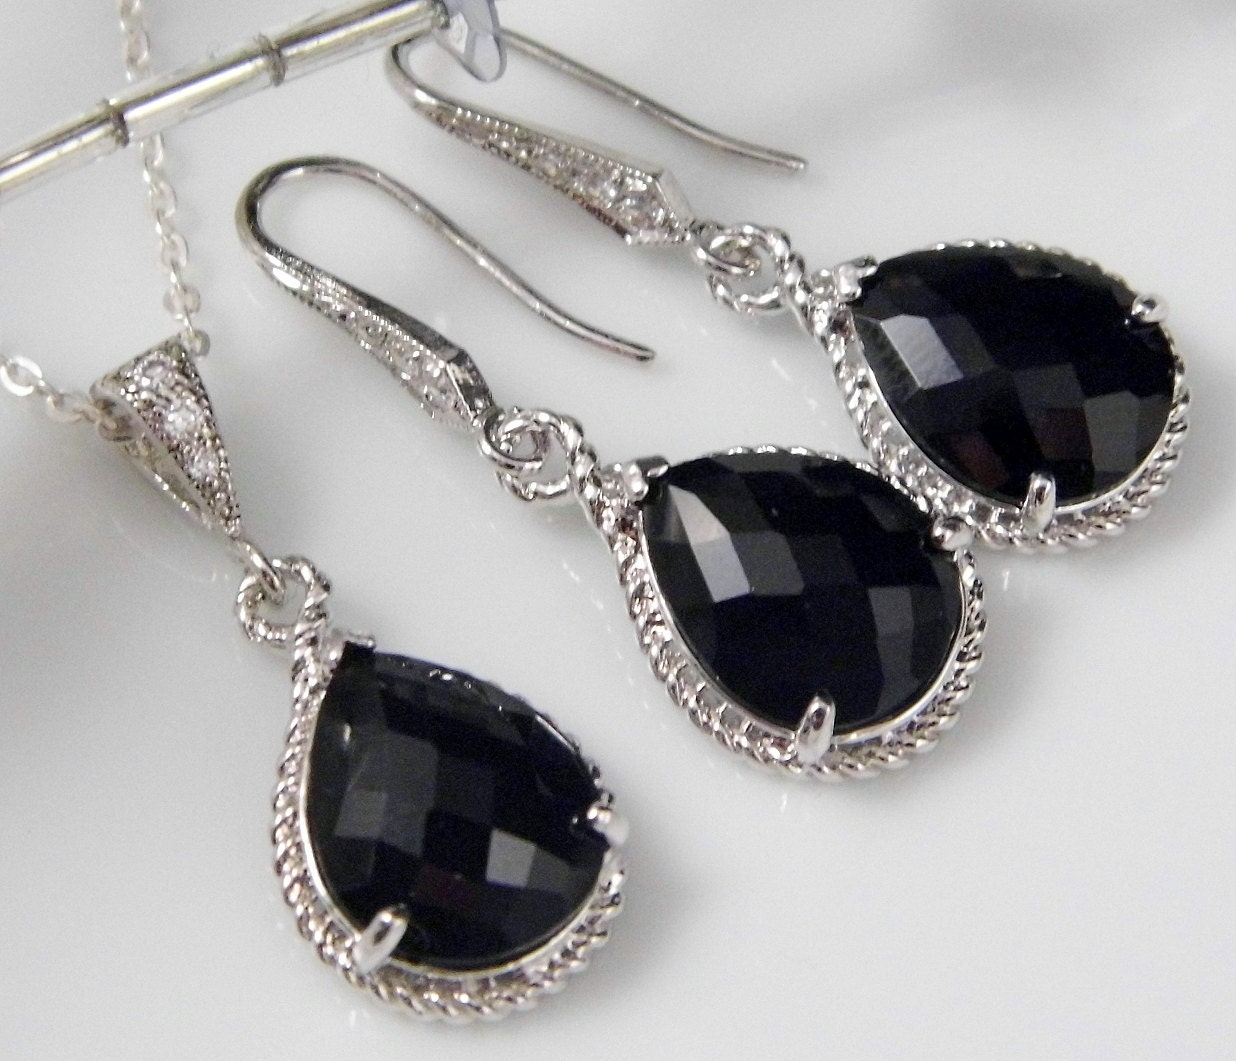 Silver Black Teardrop Czech Glass Crystal Necklace and Earring Set Bridesmaids Jewelry, Bridal Jewelry REF-601